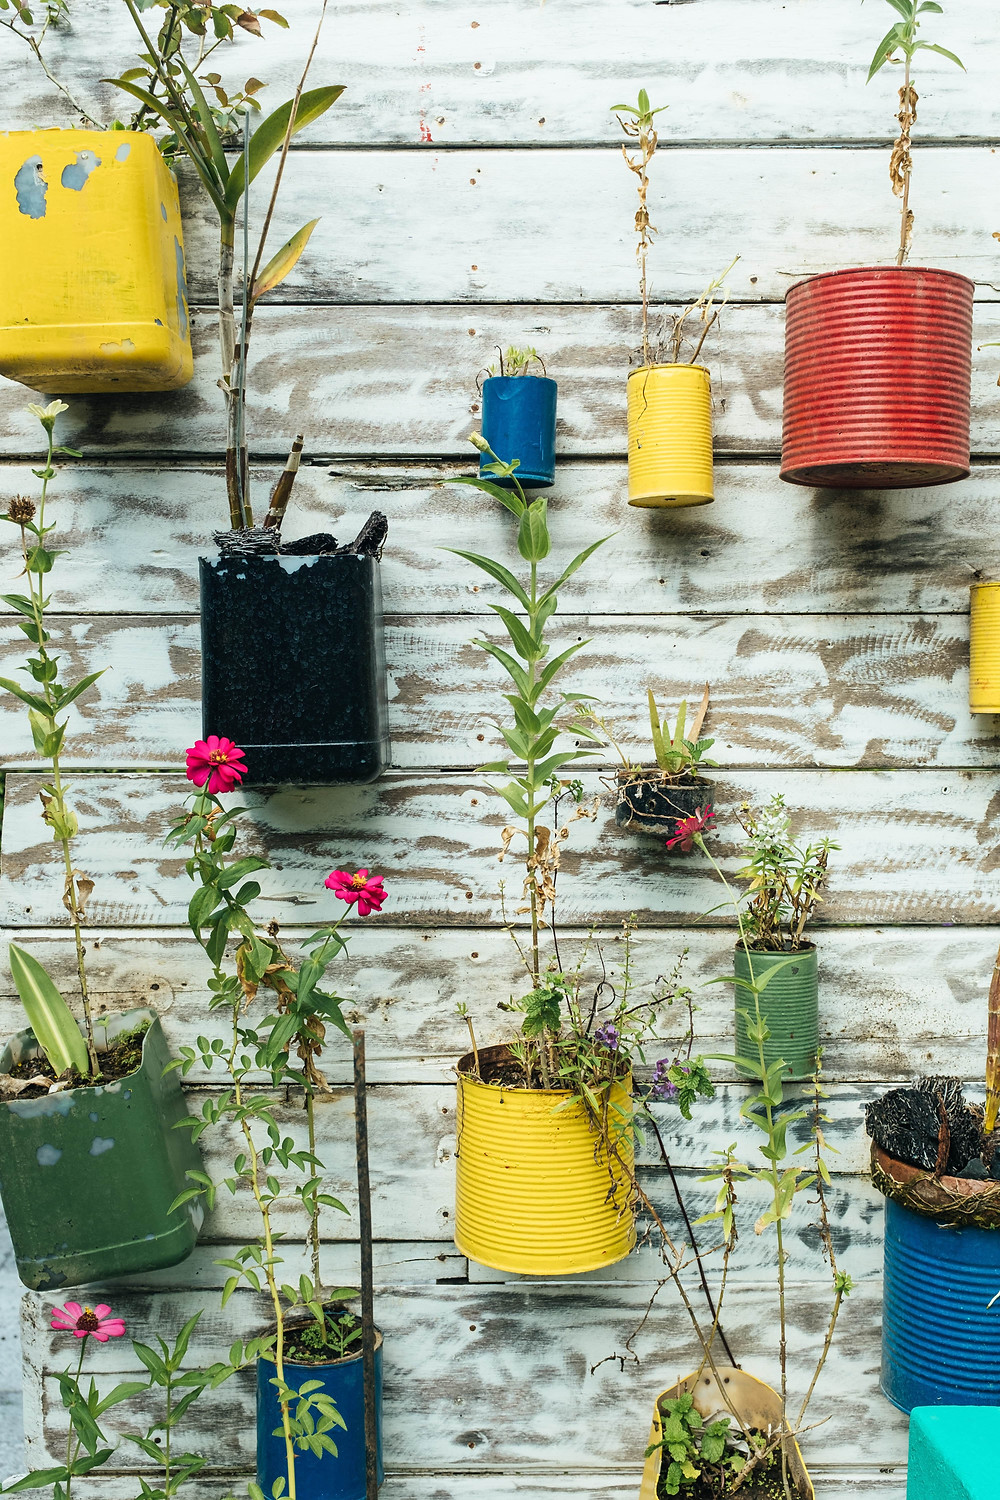 Upcycle cans to use them for flower pots